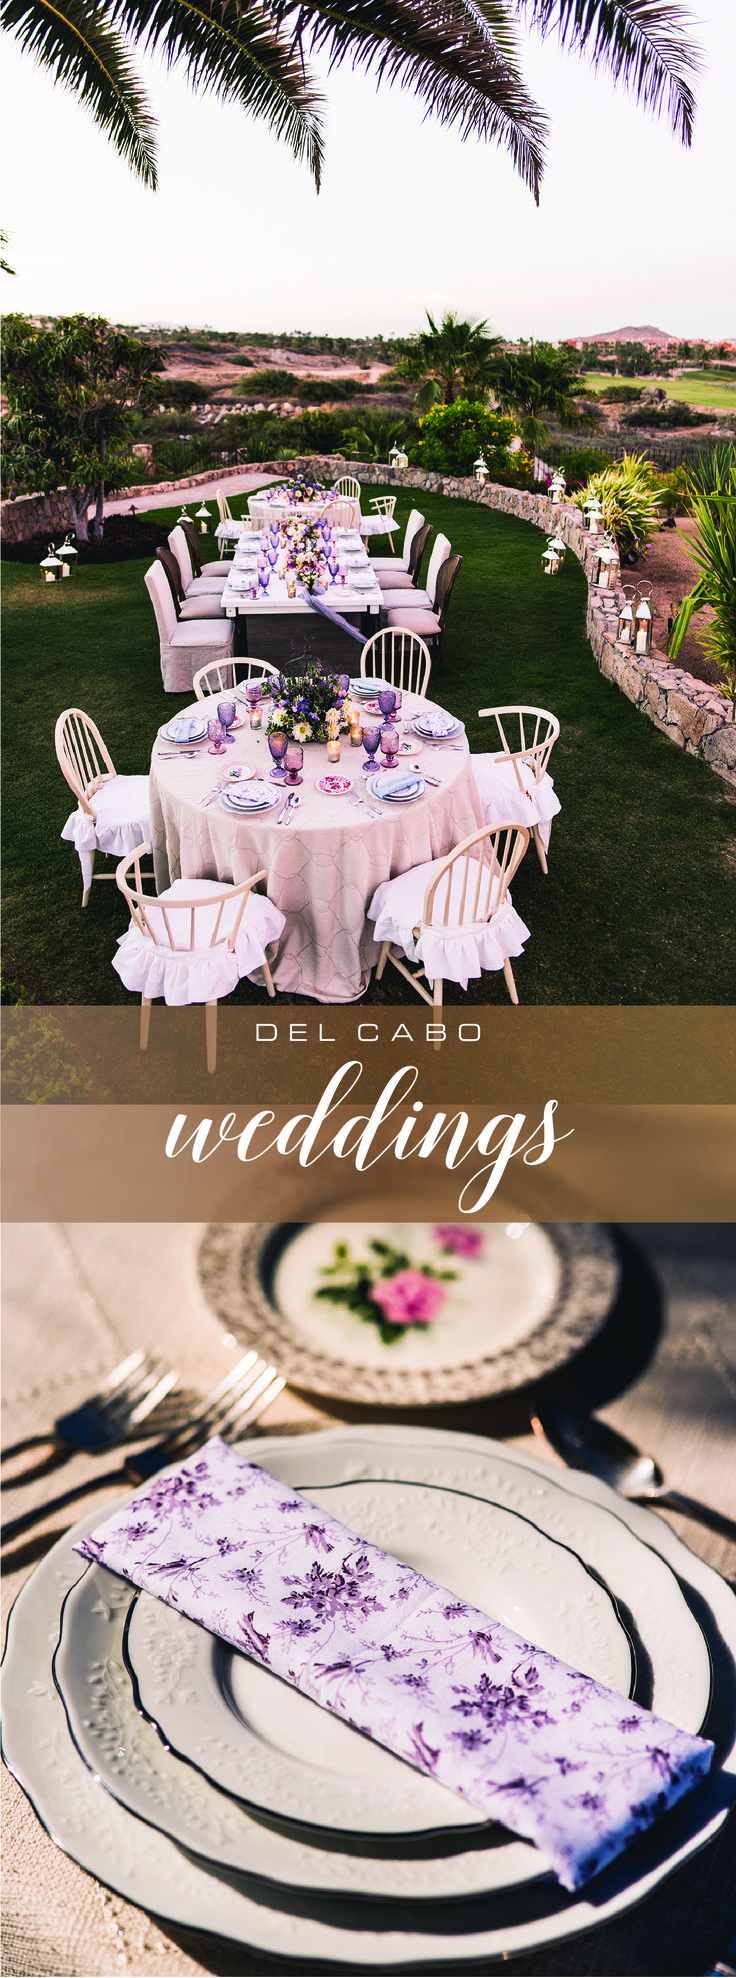 Get your own shabby chic wedding ideas in our board! You will love the beautiful vintage decor and styles you can have at your wedding. Rustic, pastel colors and floral decorations will be absolutely stunning in your wedding.